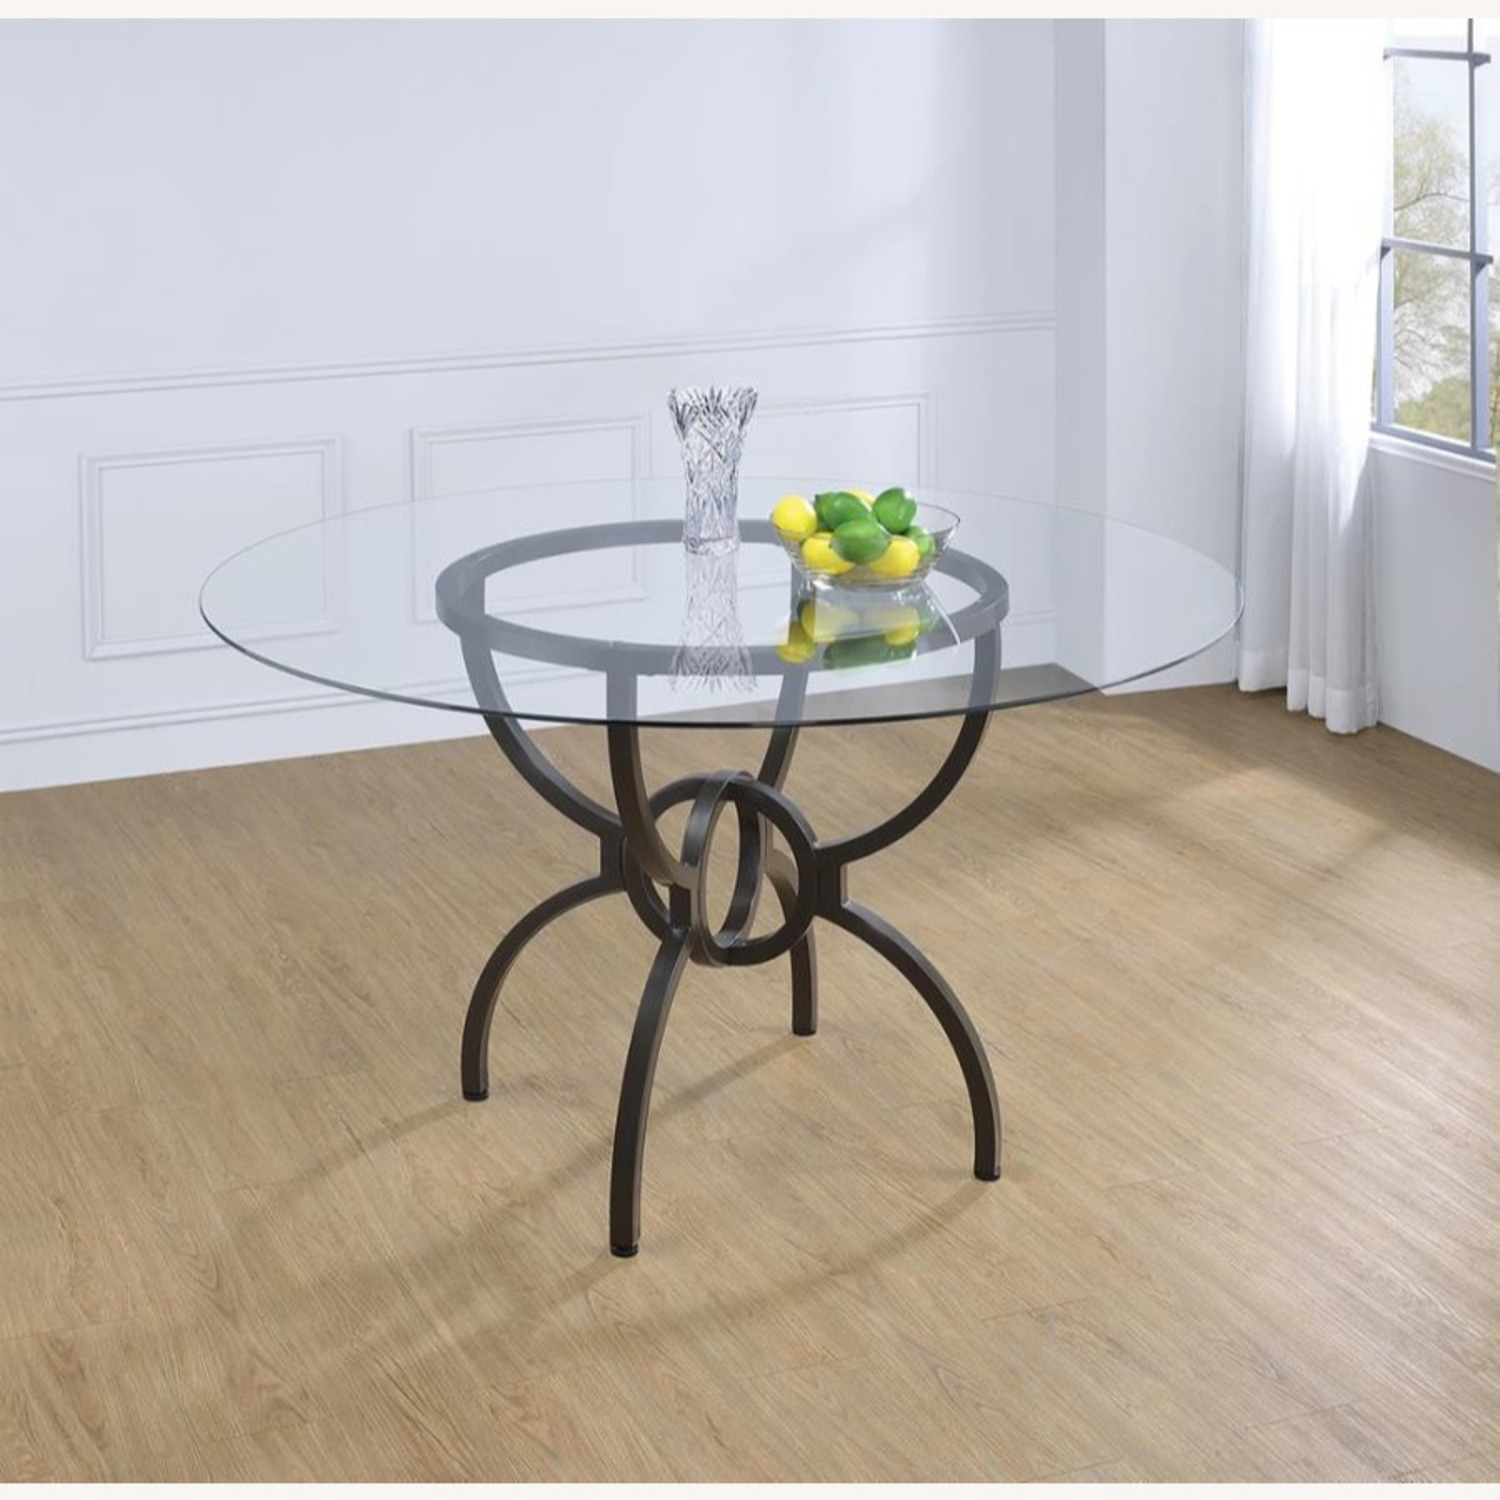 Dining Table In Gunmetal Base W/ Clear Glass Top - image-4